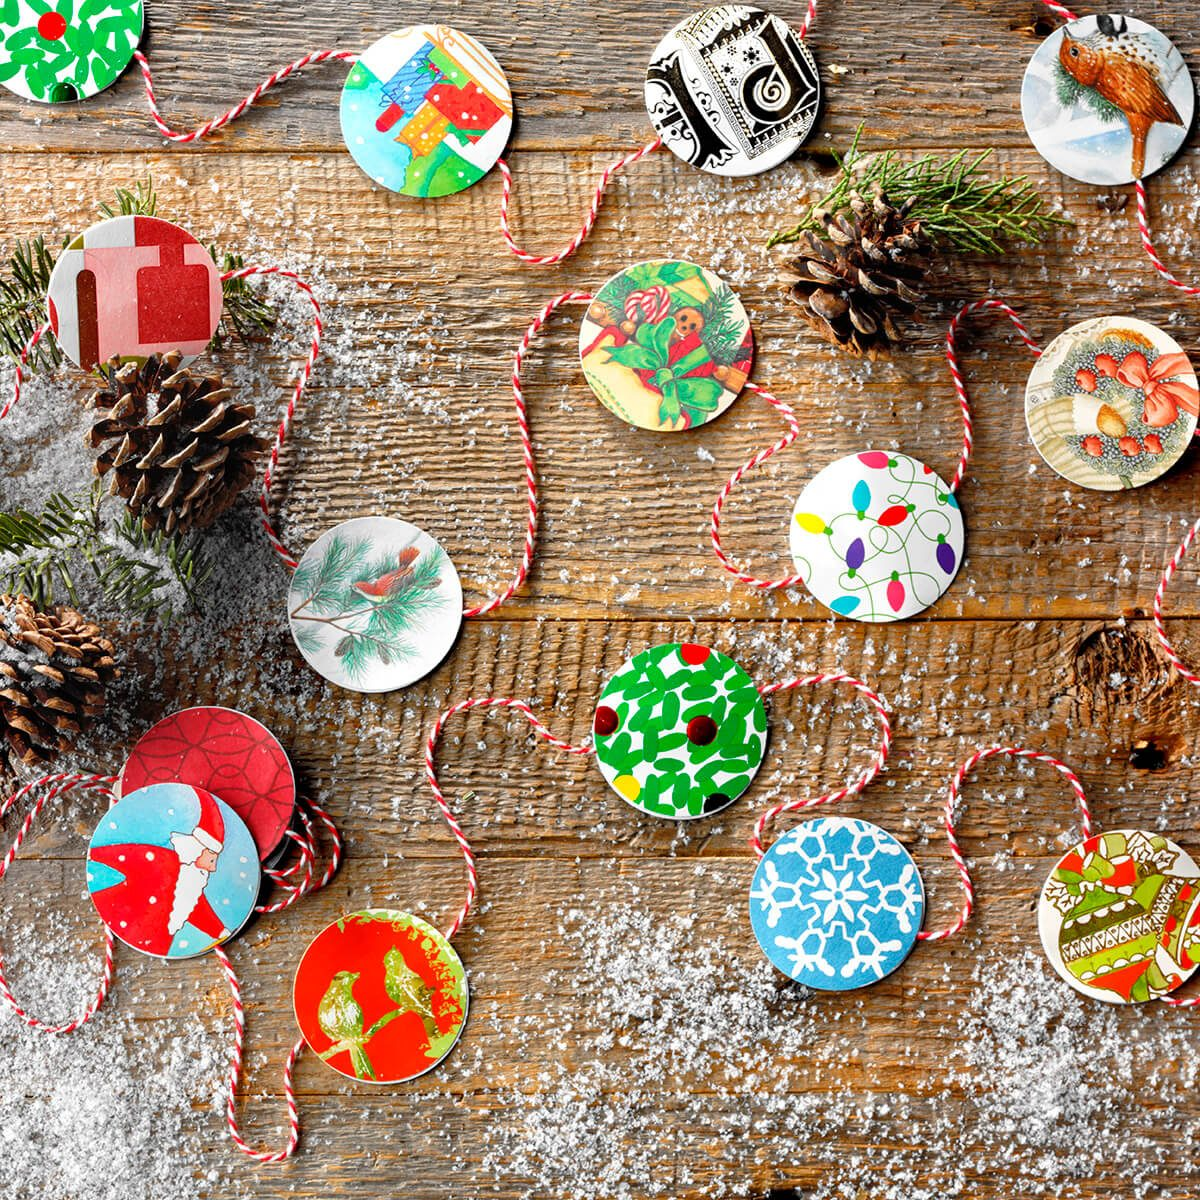 10 Christmas Card Crafts To Make With Last Year's Cards